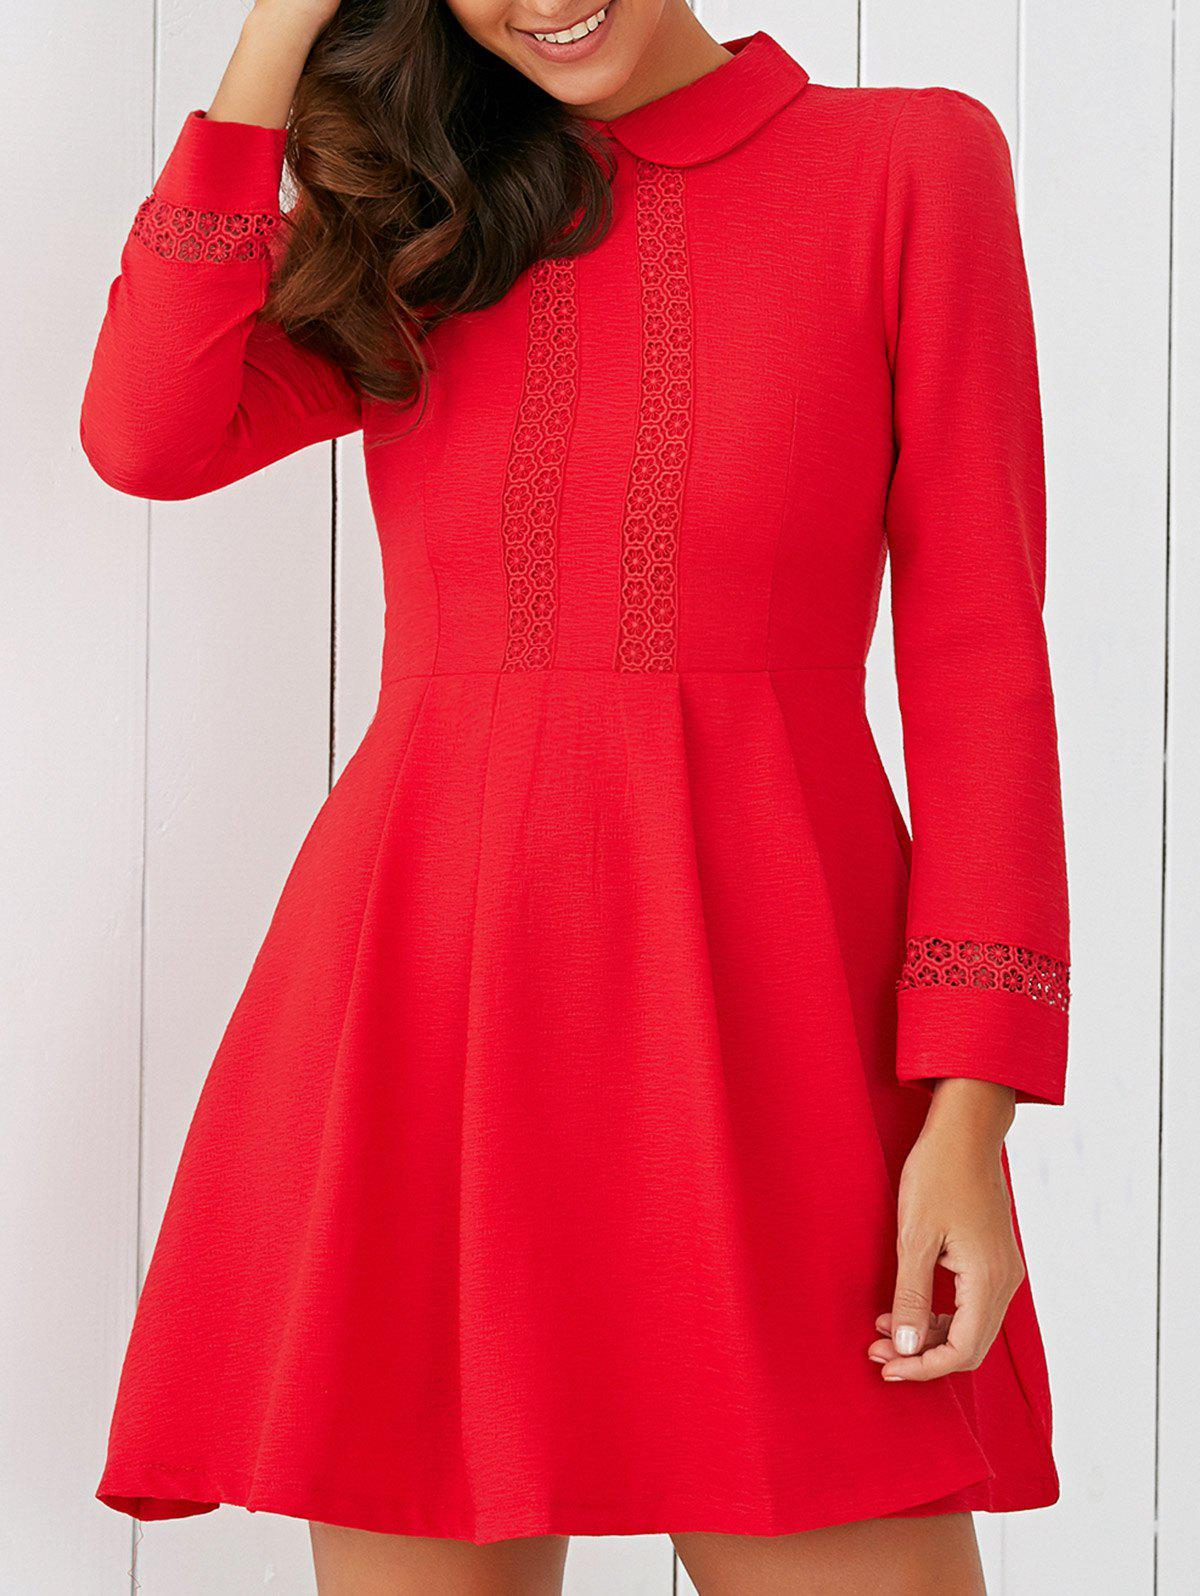 Elegant Peter Pan Collar Lace Spliced Fit and Flare Dress - RED M